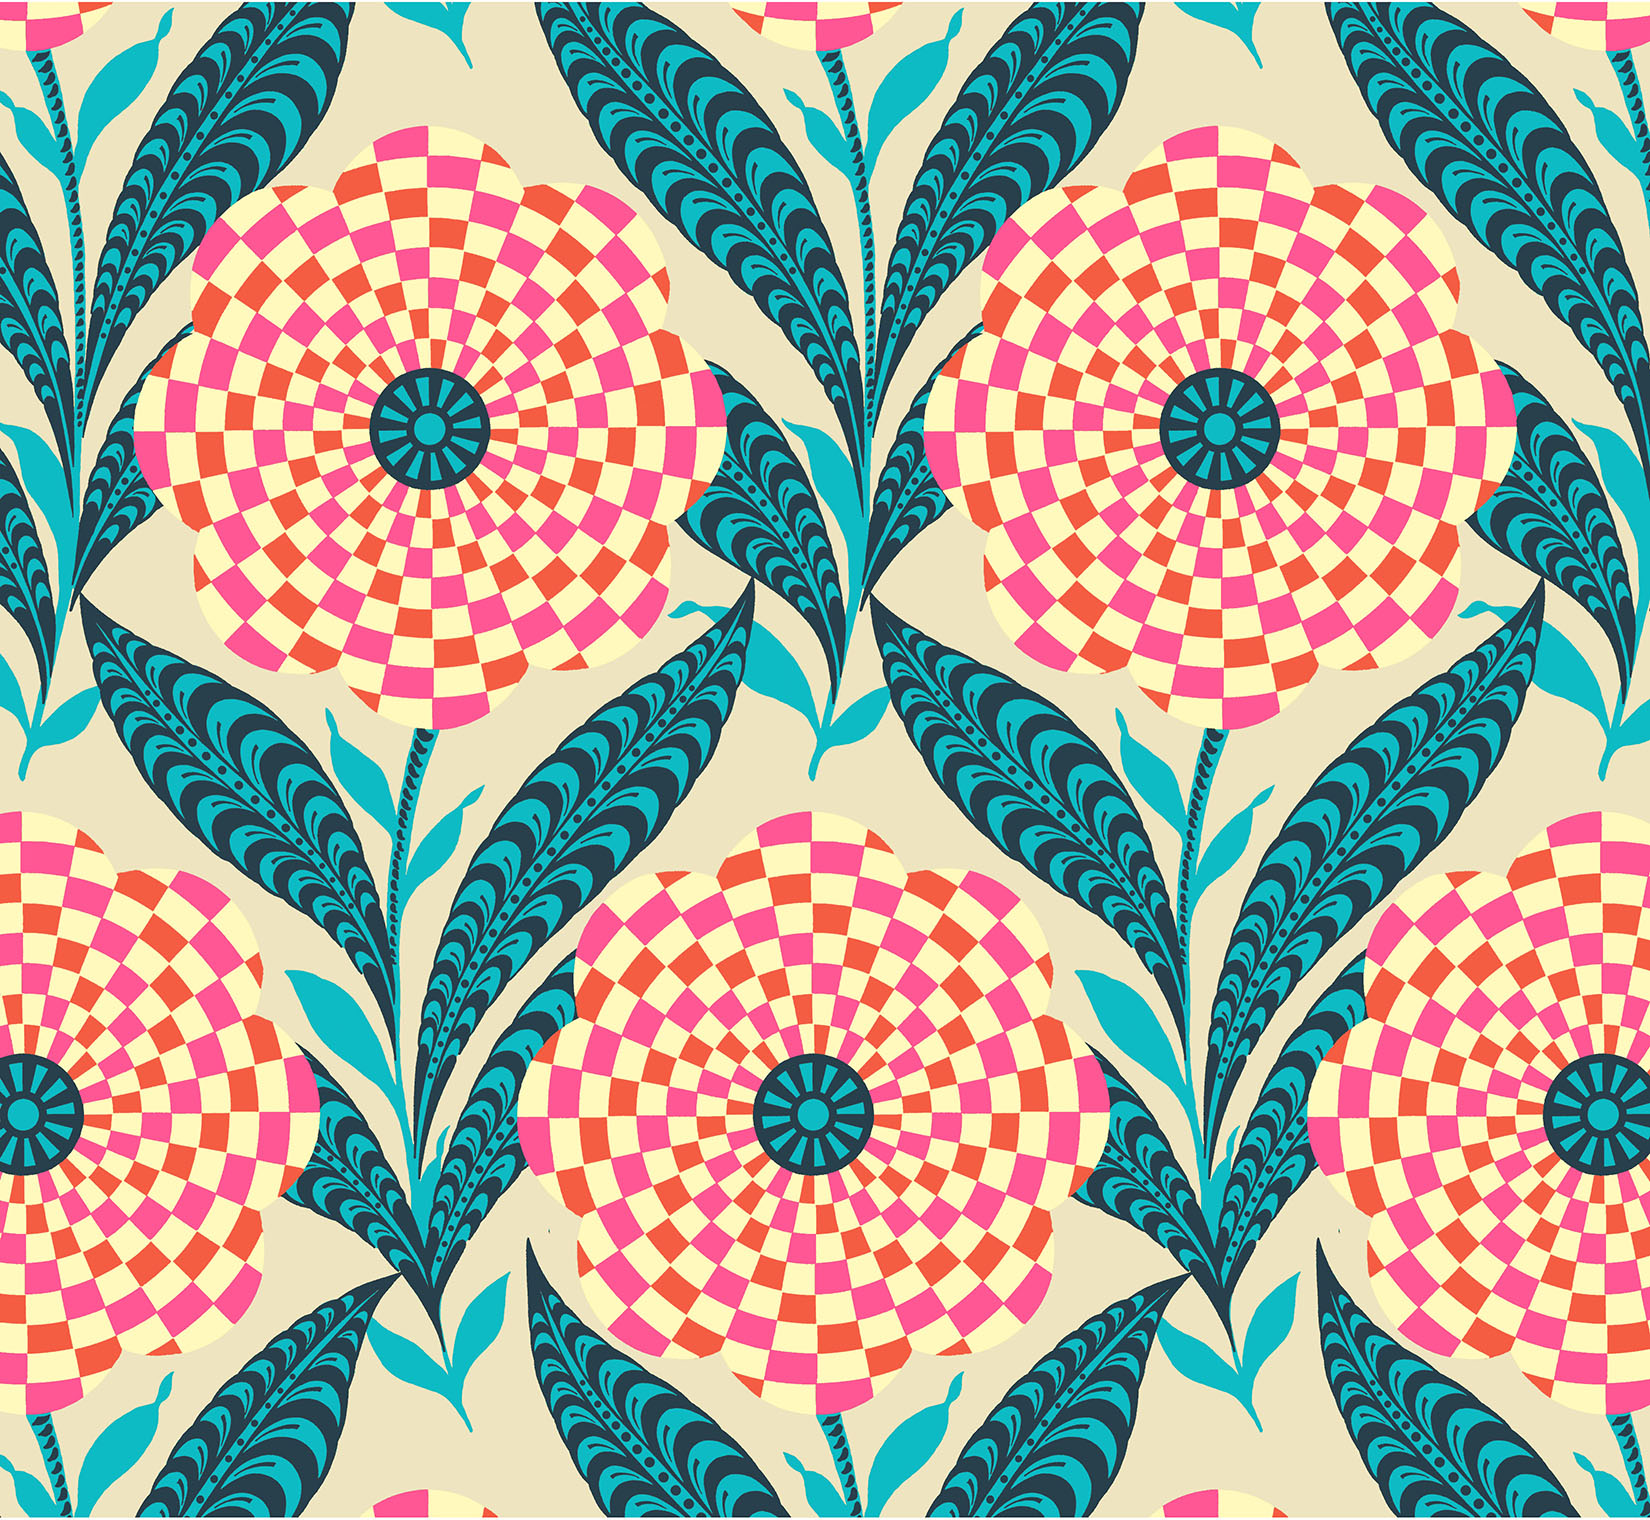 Product Features SP.9FQ) by Amy Butler for Free Spirit Love Fat Quarter Bundle -